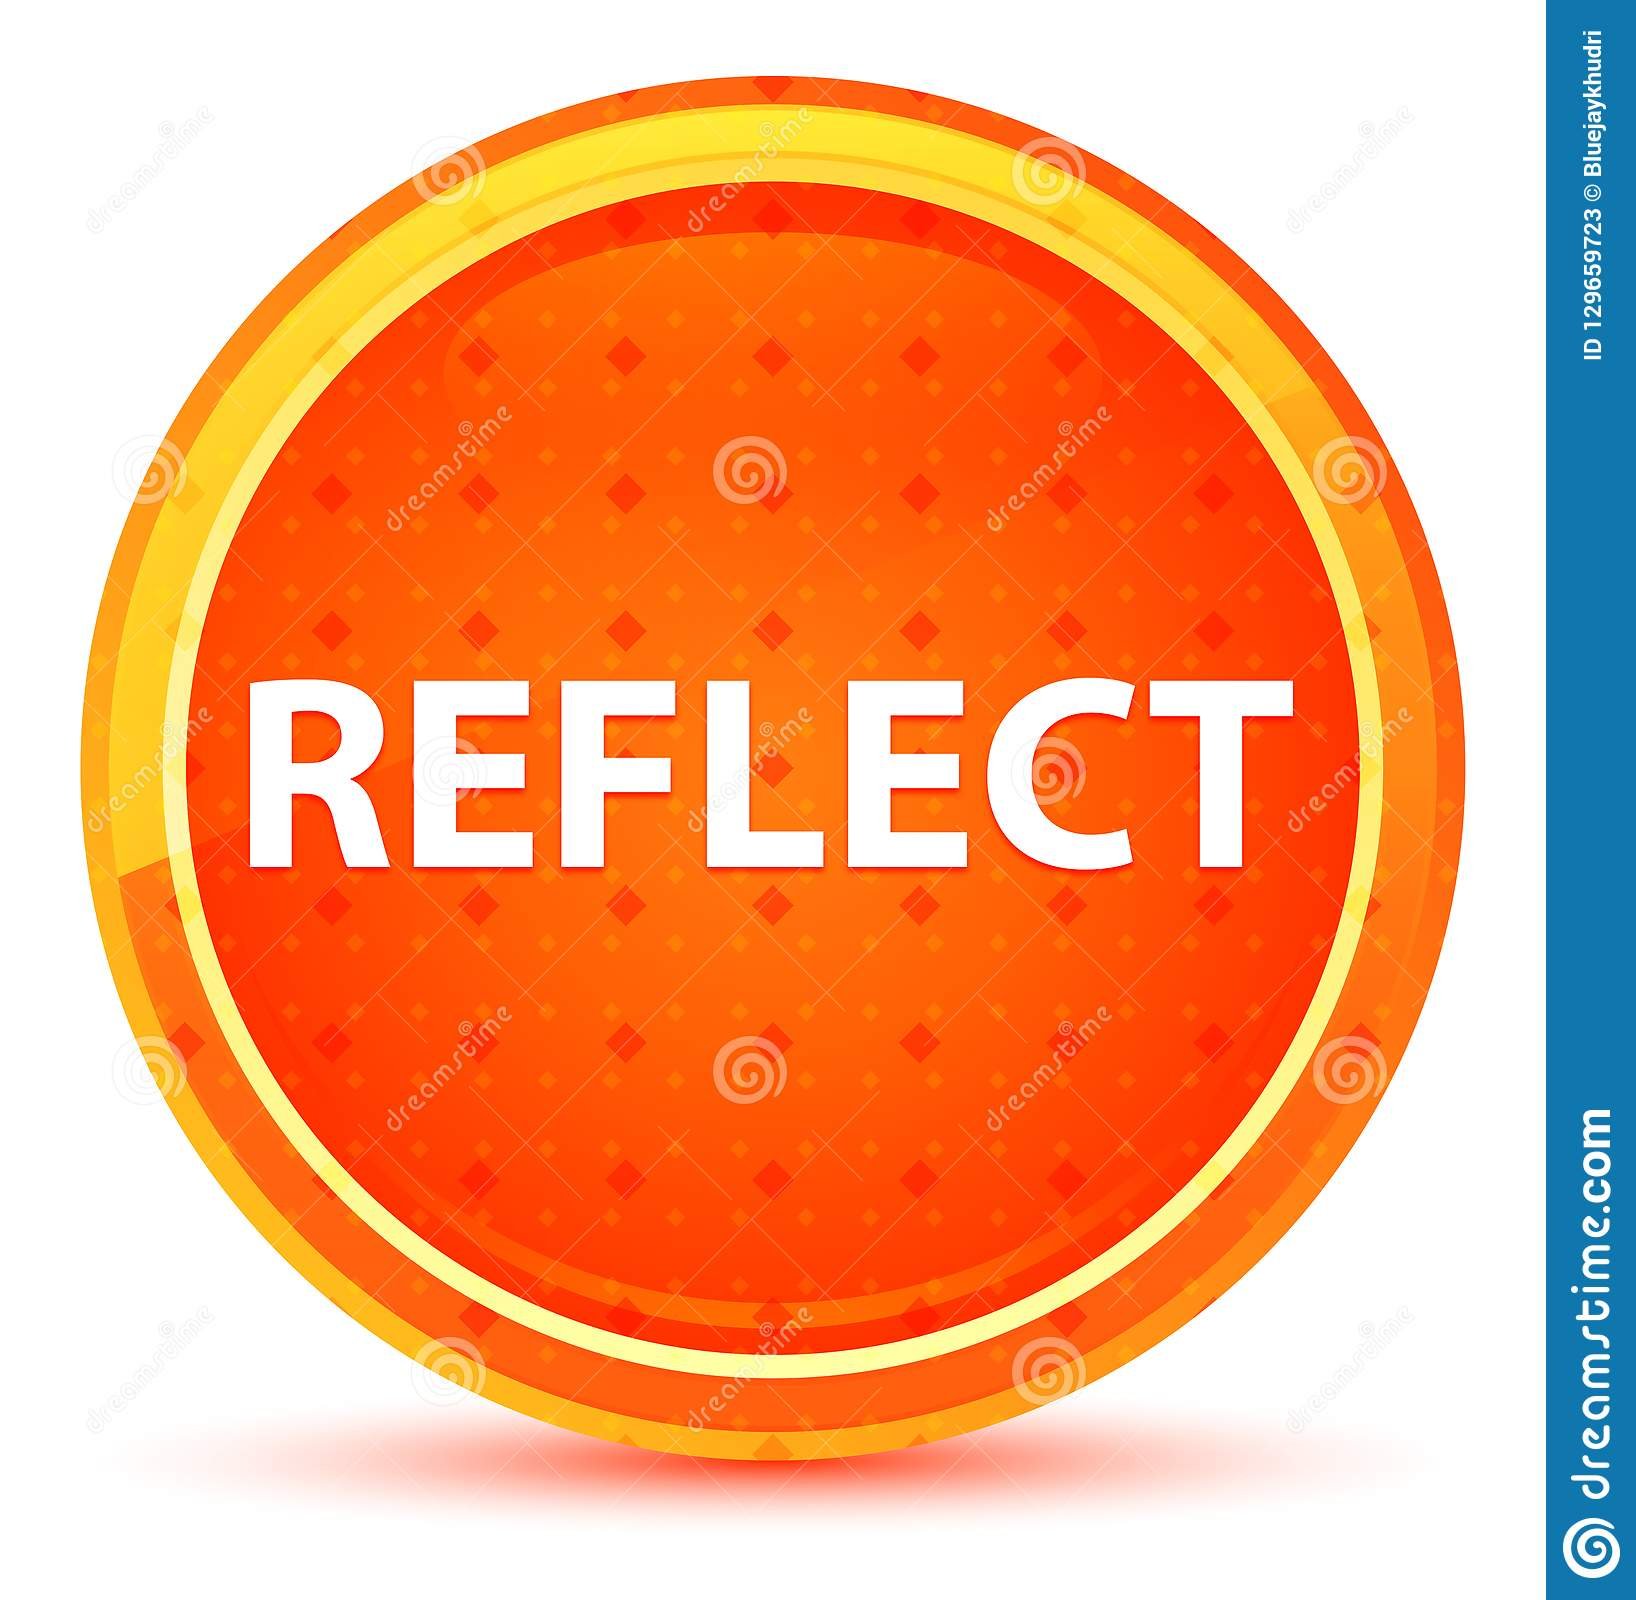 Reflect Natural Orange Round Button